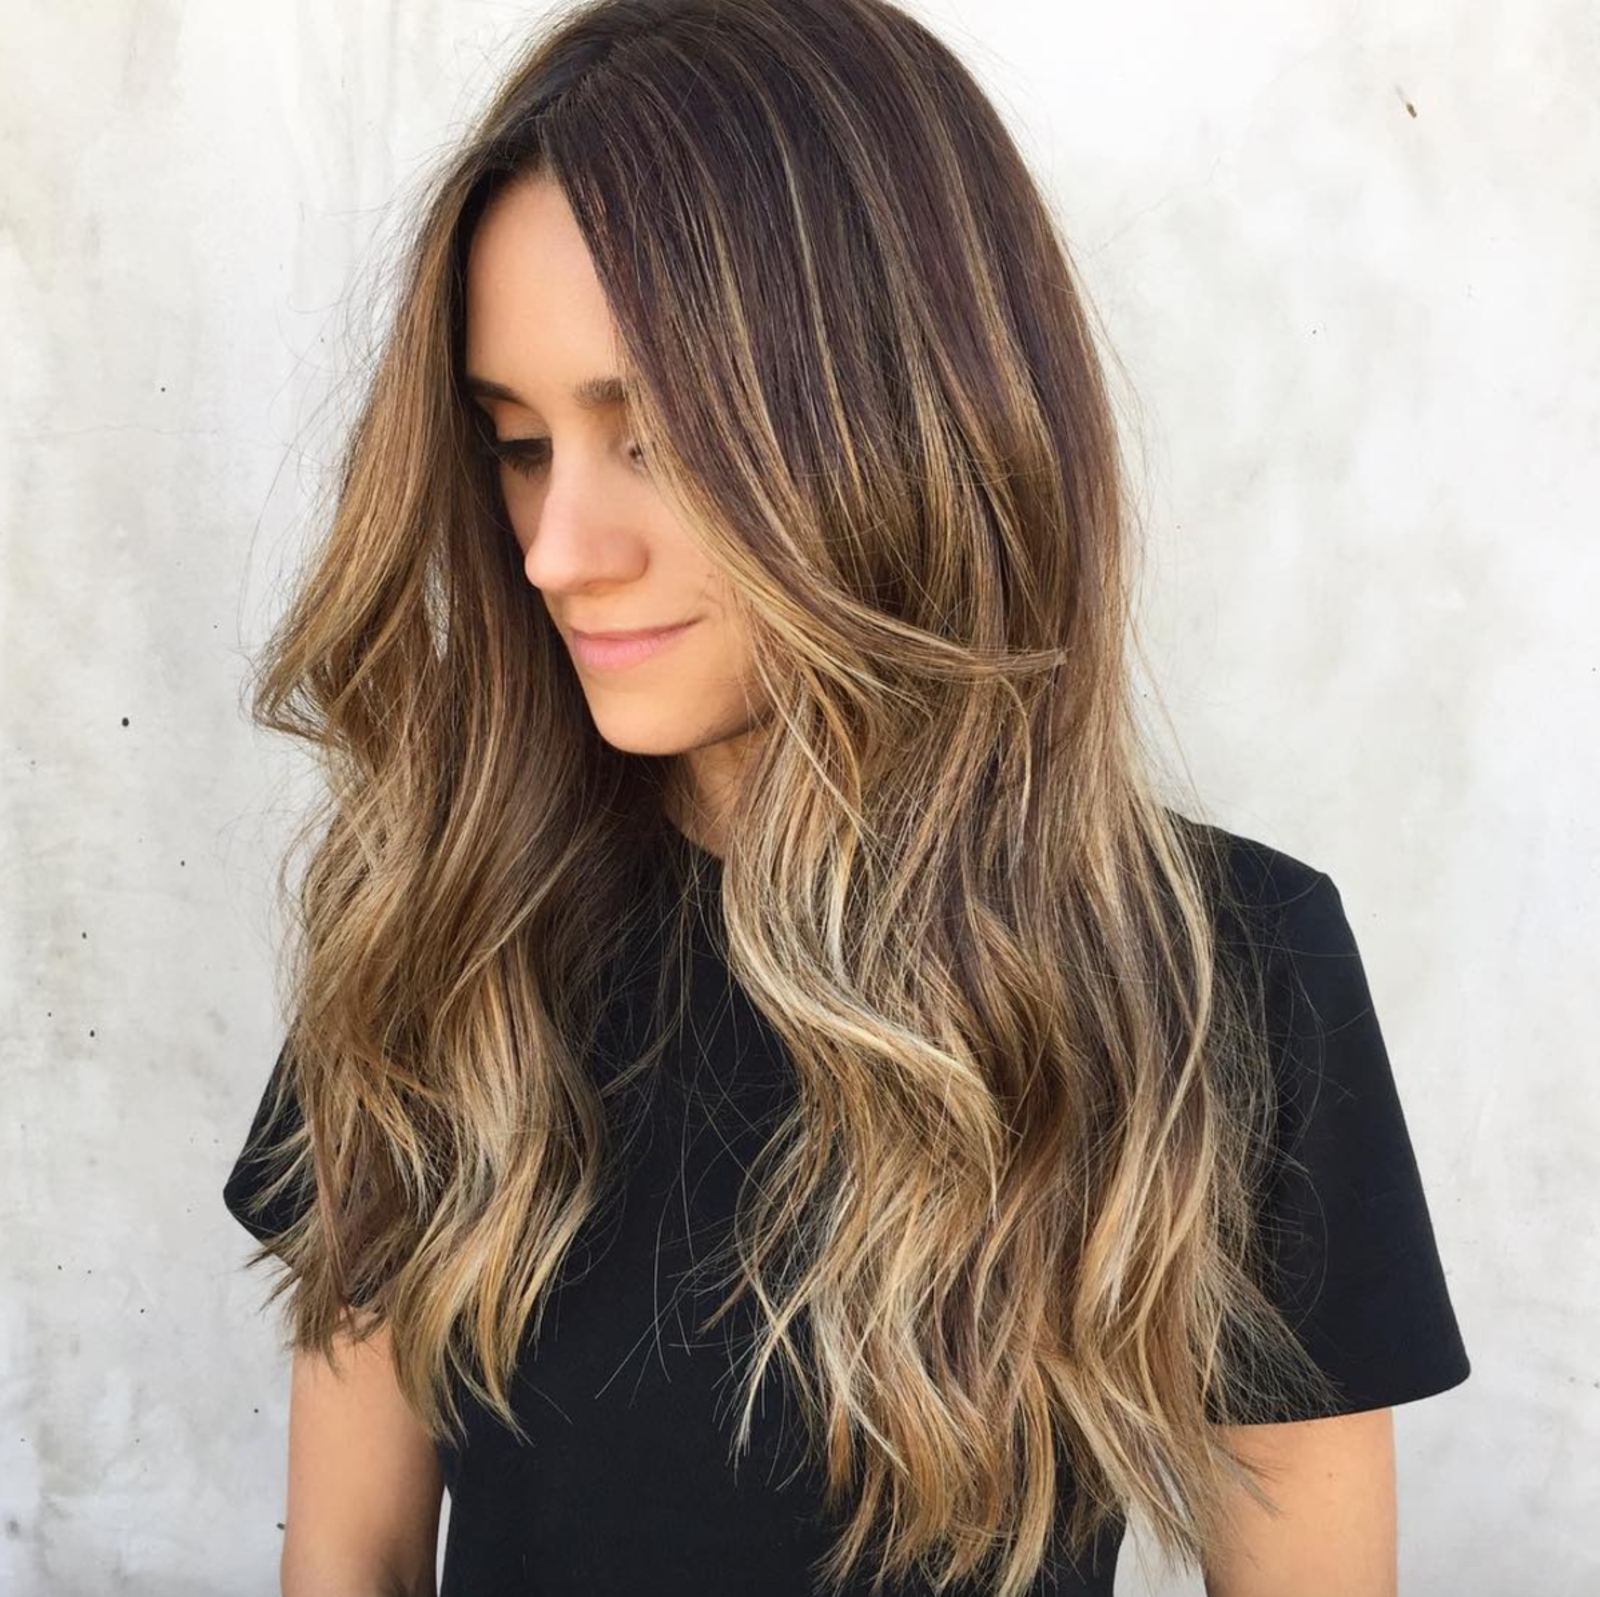 The 33 Best Balayage Ideas For Every Hair Color And Texture – Glamour For Curly Dark Brown Bob Hairstyles With Partial Balayage (View 20 of 25)